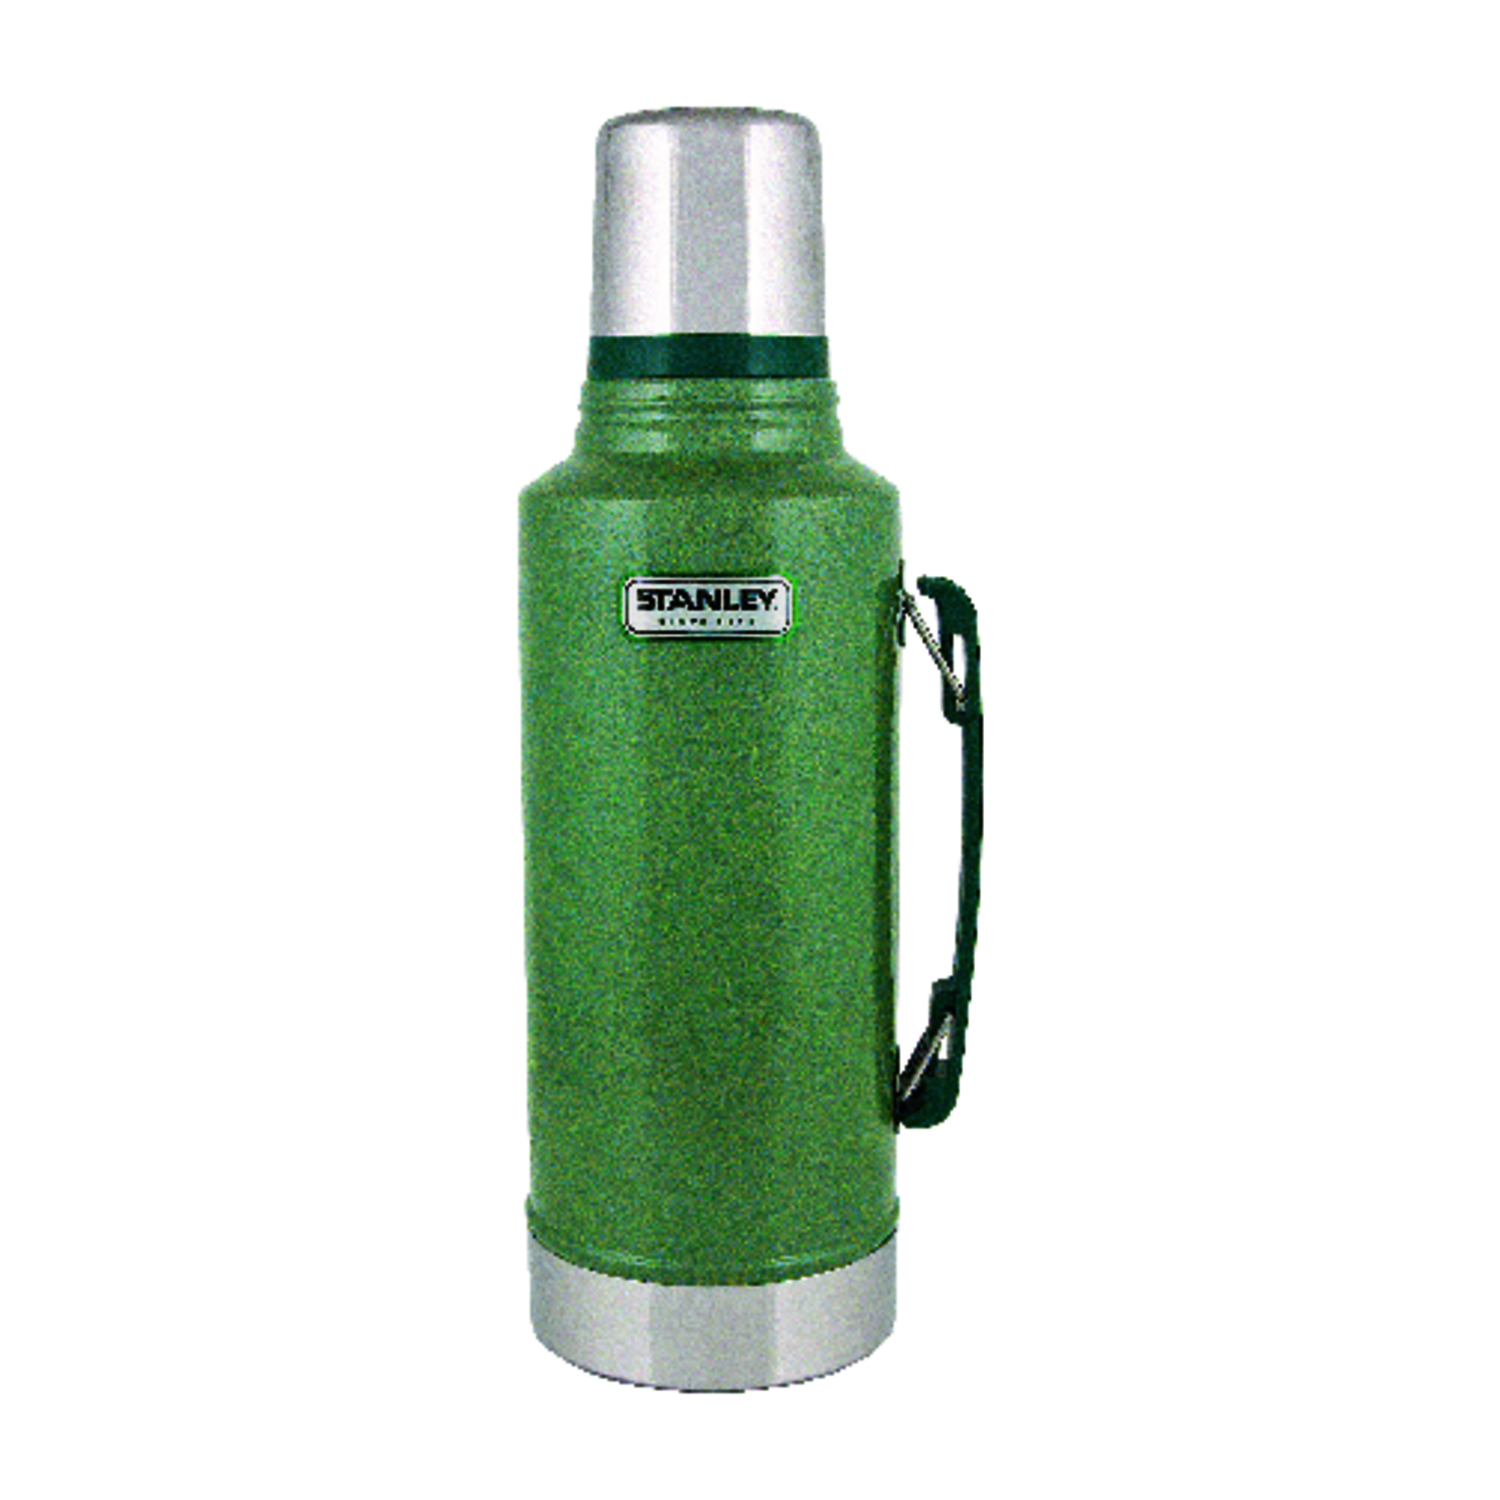 Stanley  Hammertone Green  Stainless Steel  Classic  BPA Free 0.5 gal. Water Bottle